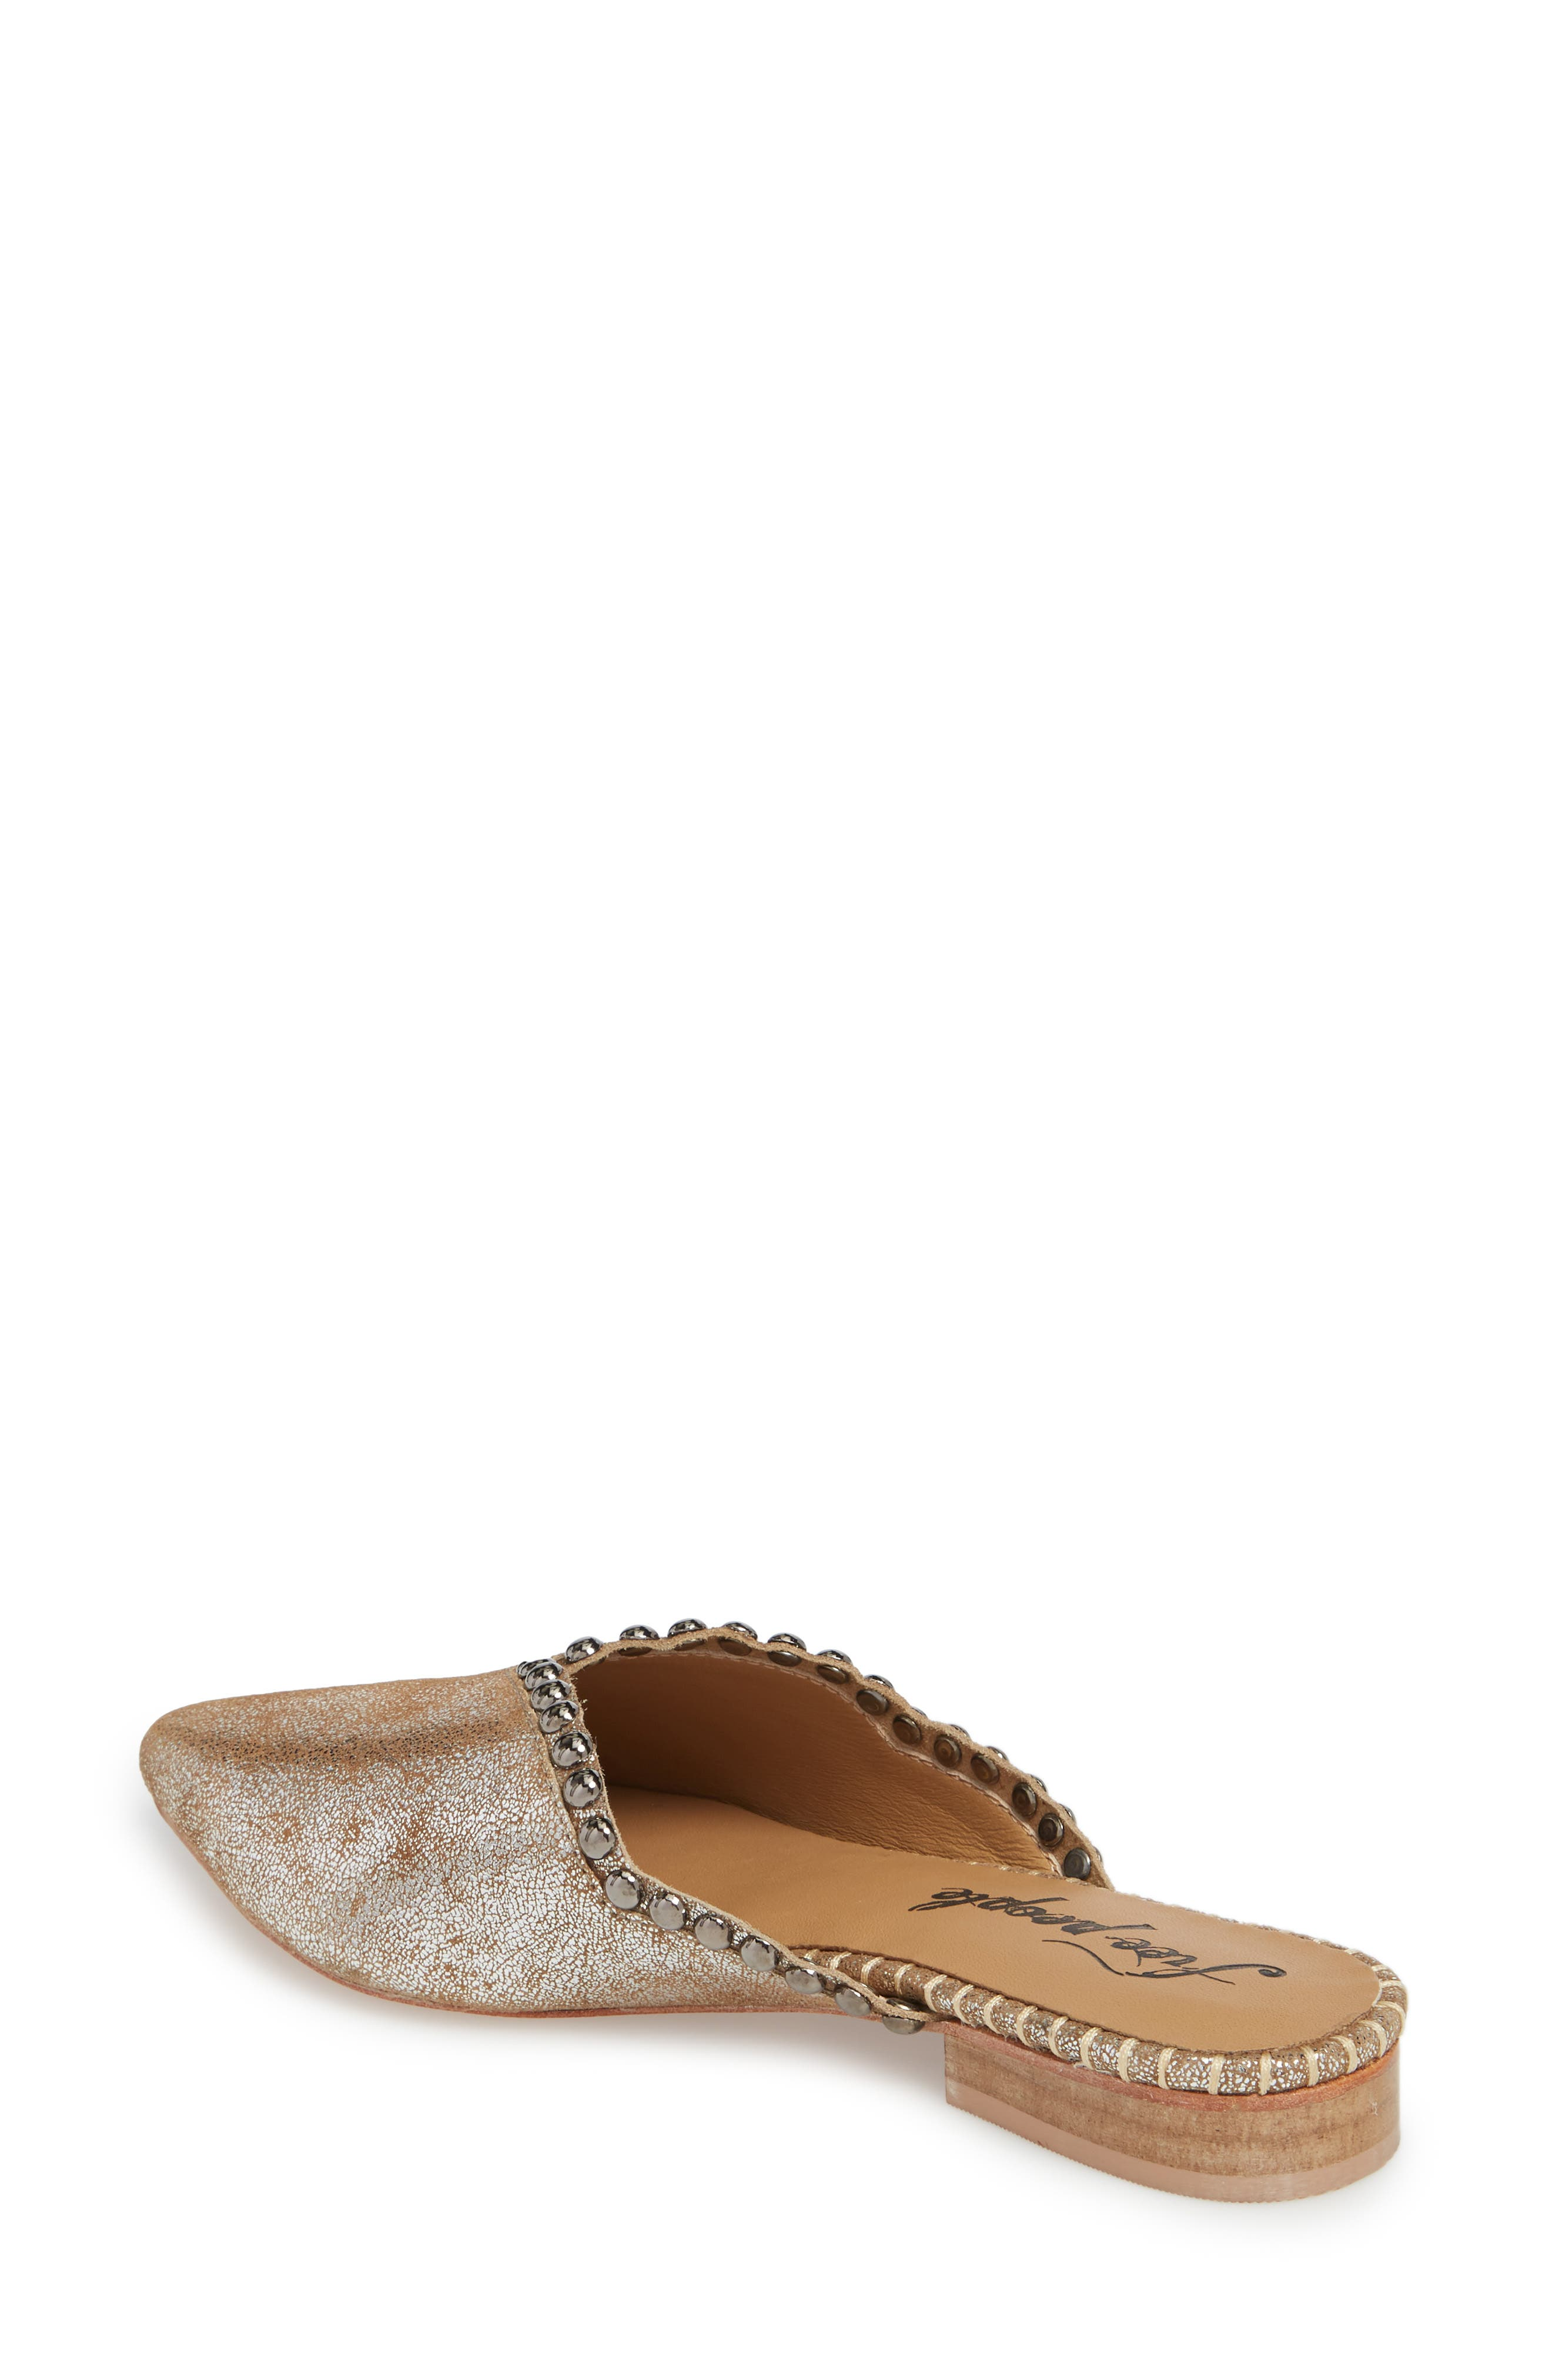 Newport Studded Mule,                             Alternate thumbnail 2, color,                             SILVER